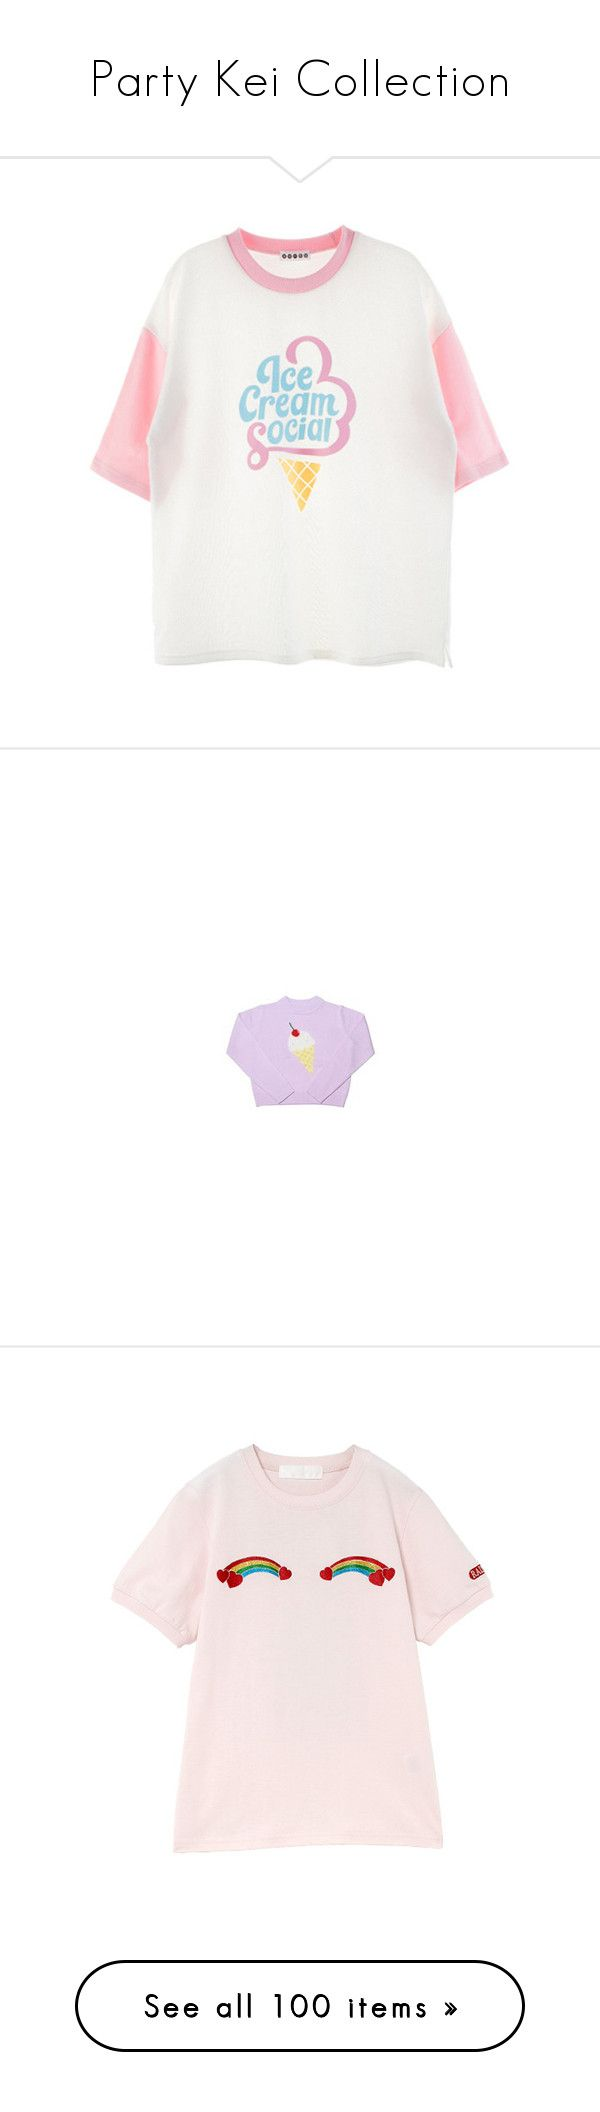 """""""Party Kei Collection"""" by infiglo ❤ liked on Polyvore featuring tops, t-shirts, shirts, tees, short-sleeve shirt, white short sleeve shirt, tee-shirt, round neck t shirt, print shirts and clothing - ls tops"""